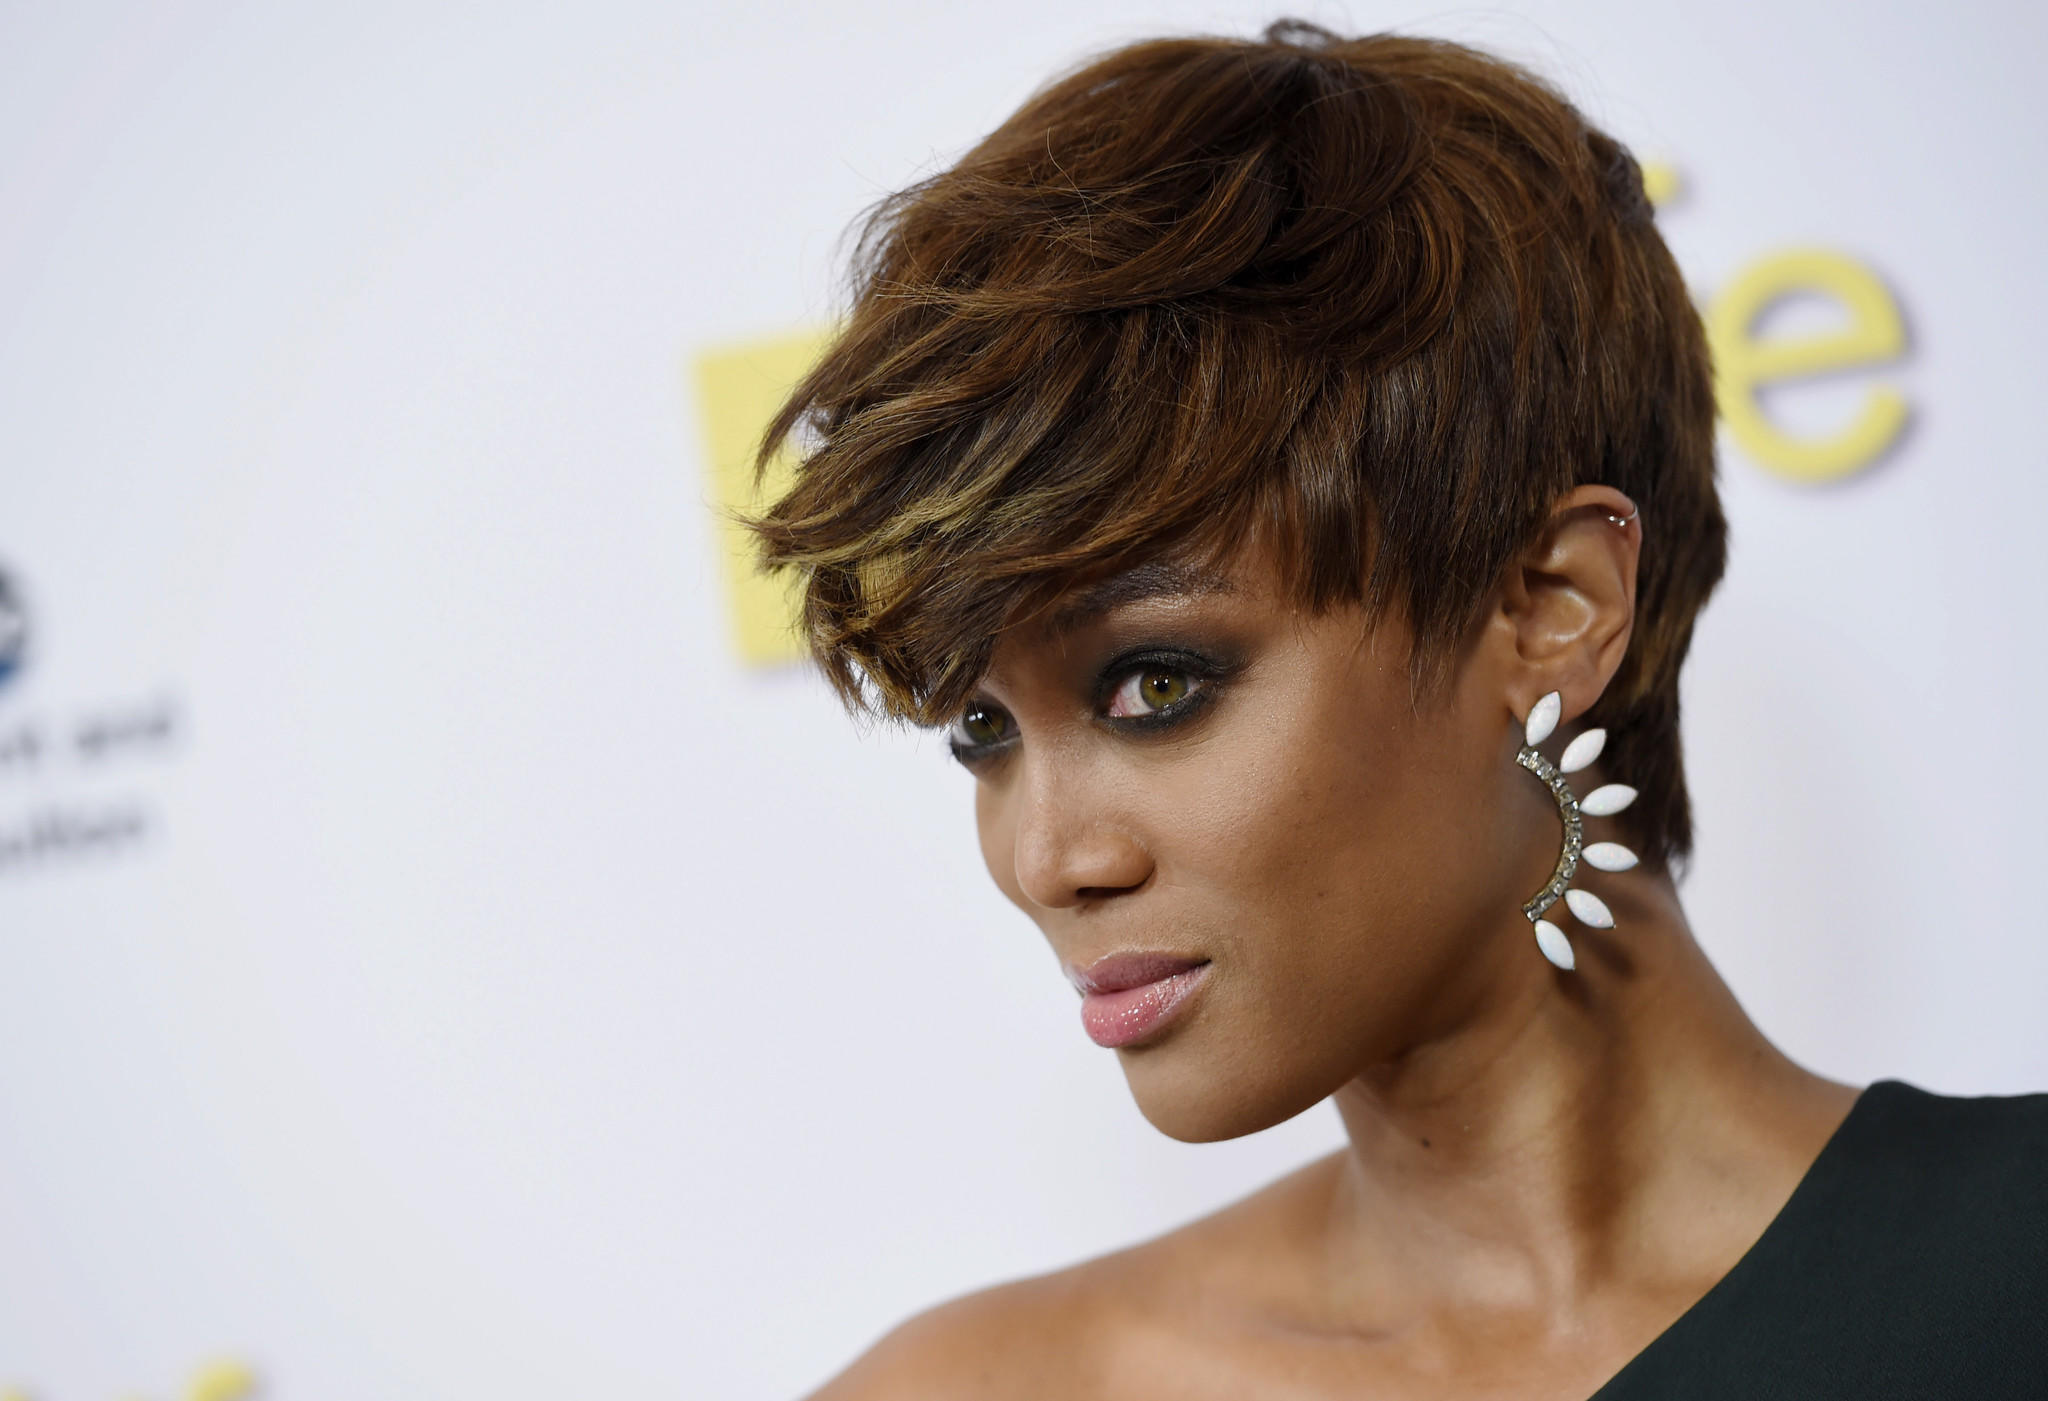 Americas got talent 2017 host - Tyra Banks Announced As New Host Of America S Got Talent La Times